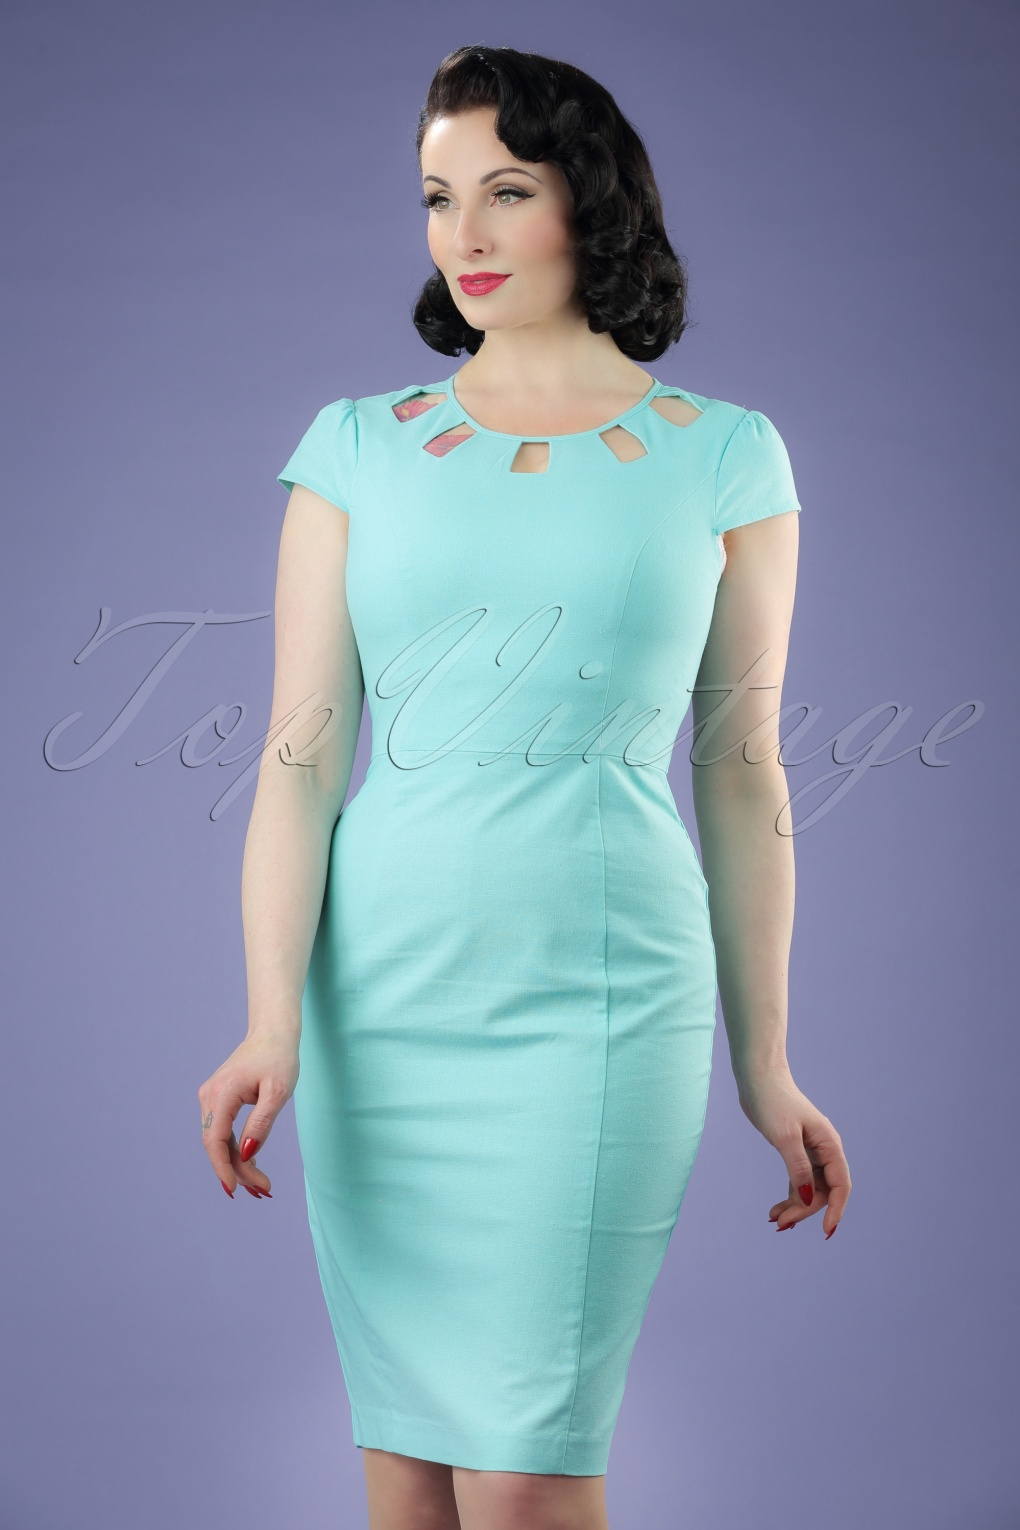 1960s Style Dresses- Retro Inspired Fashion 60s Kitty Pencil Dress in Light Aqua £56.42 AT vintagedancer.com